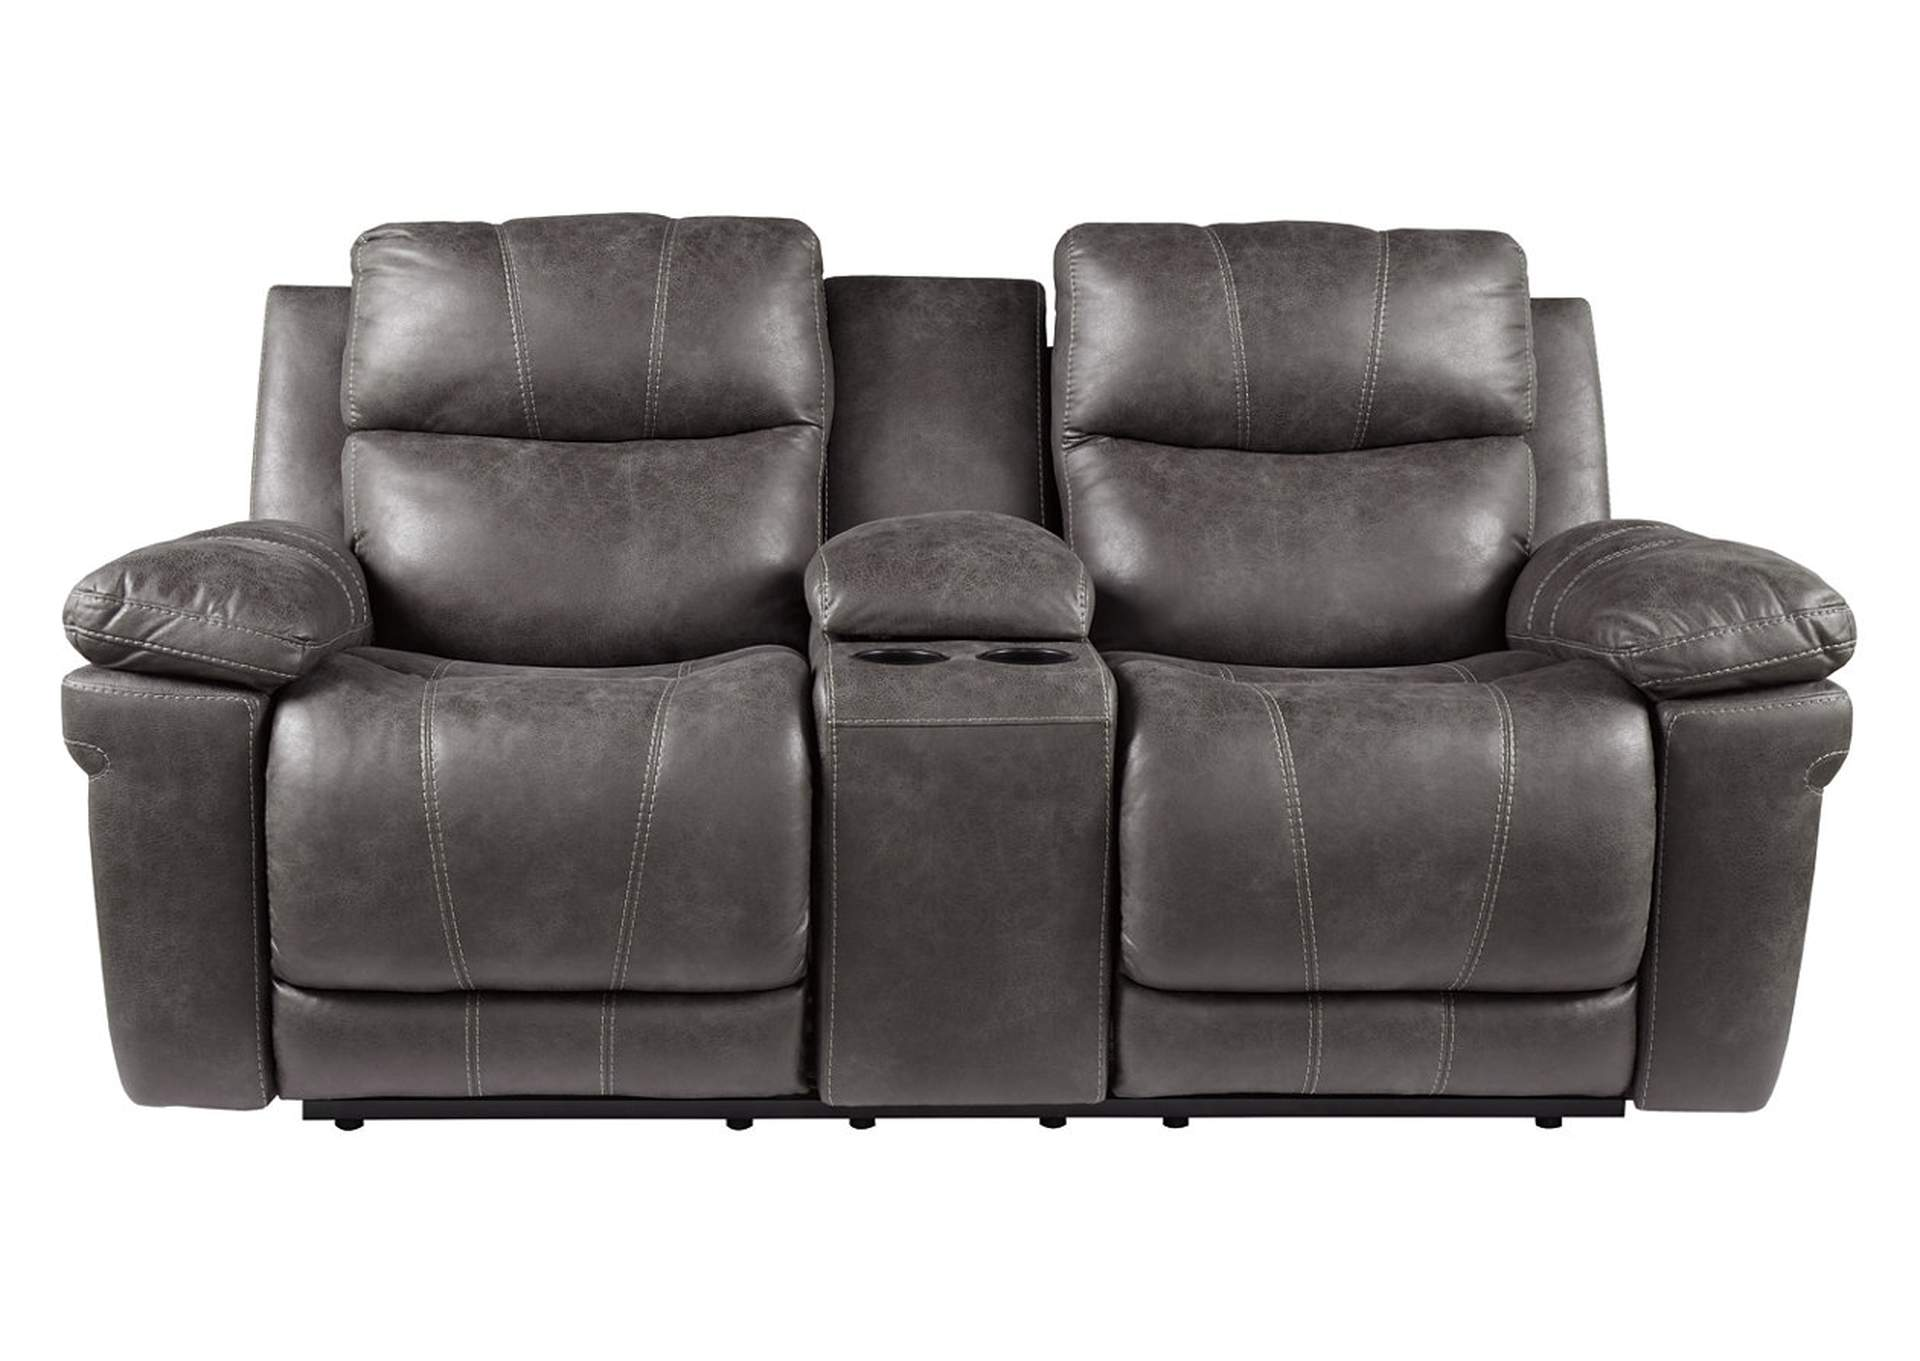 Erlangen Midnight Power Reclining Loveseat w/Adjustable Headrest,Signature Design By Ashley